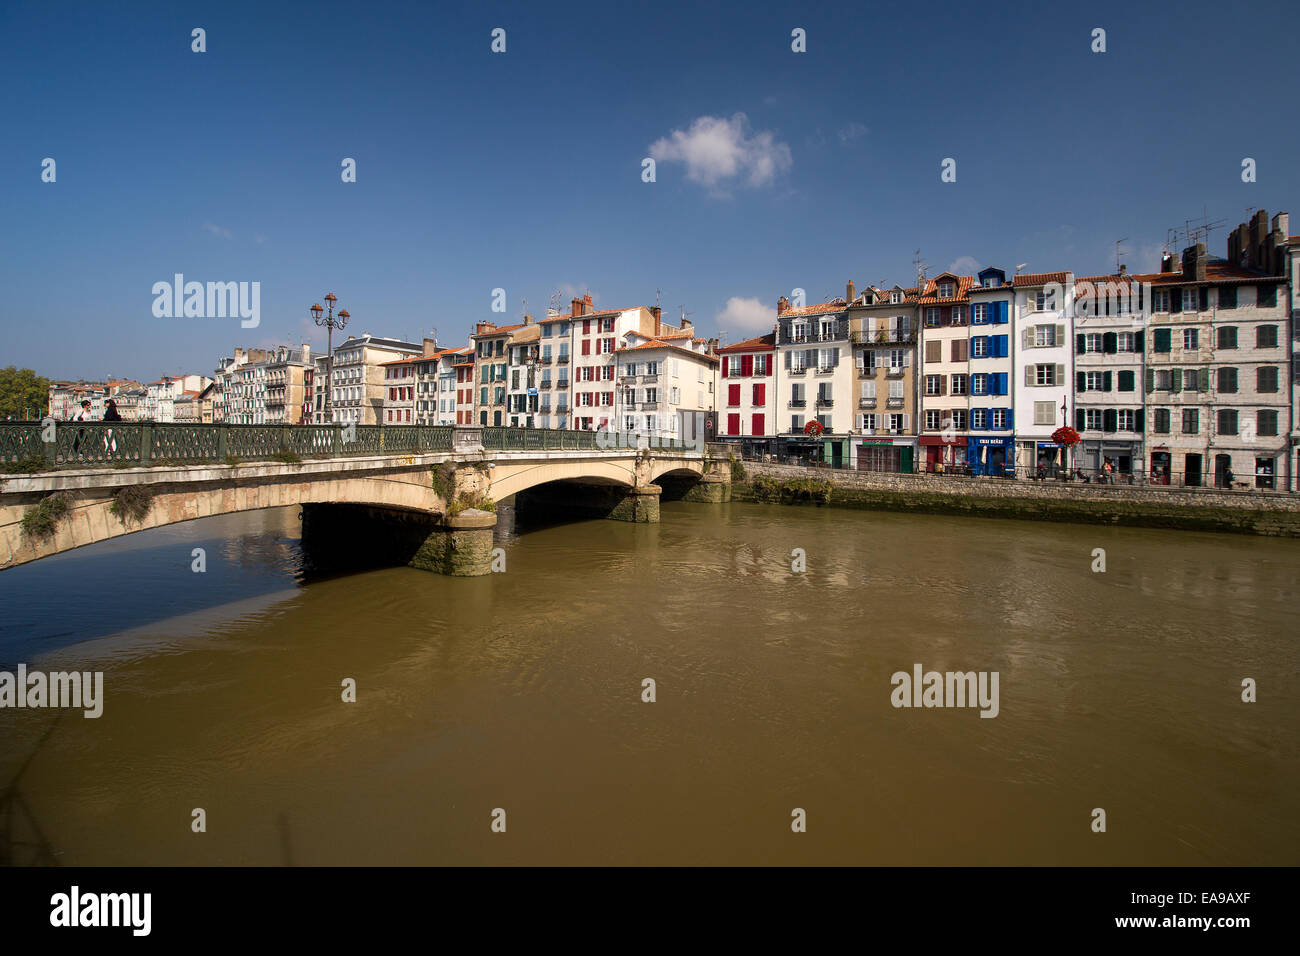 Bridge over the Adour river Bayonne France. - Stock Image